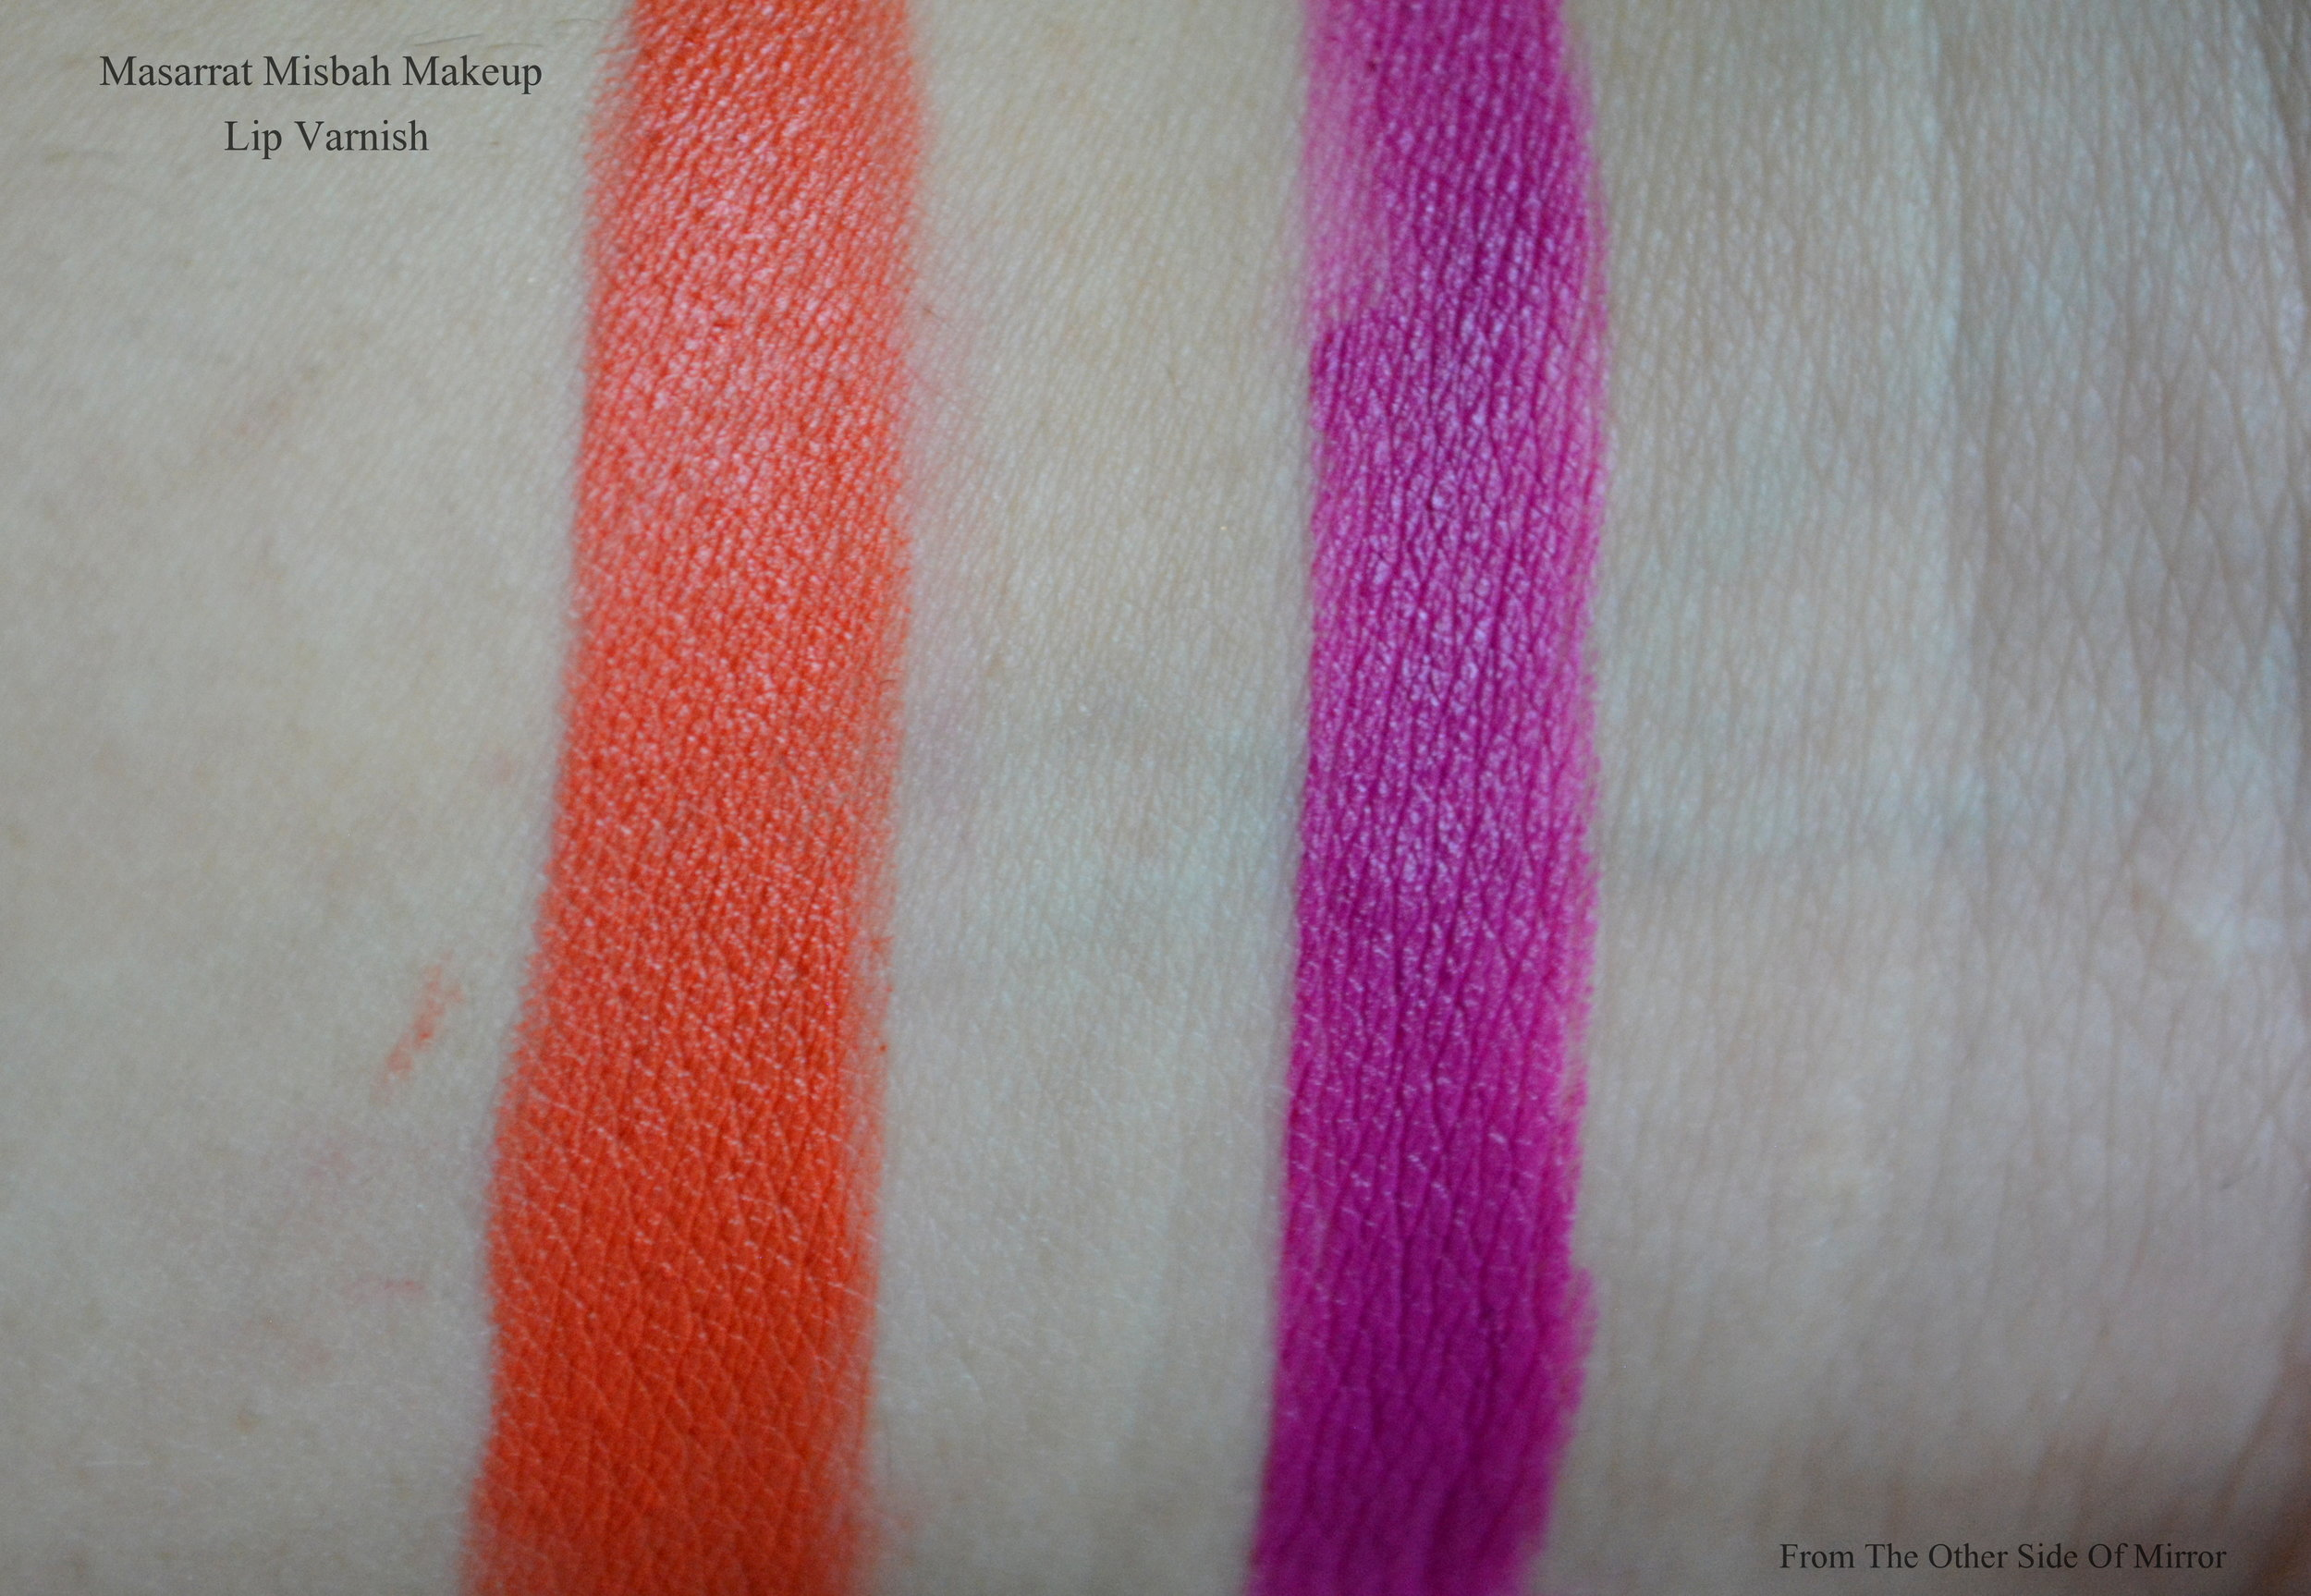 MM Makeup Lip Varnish- L: MM Orange R: Viola